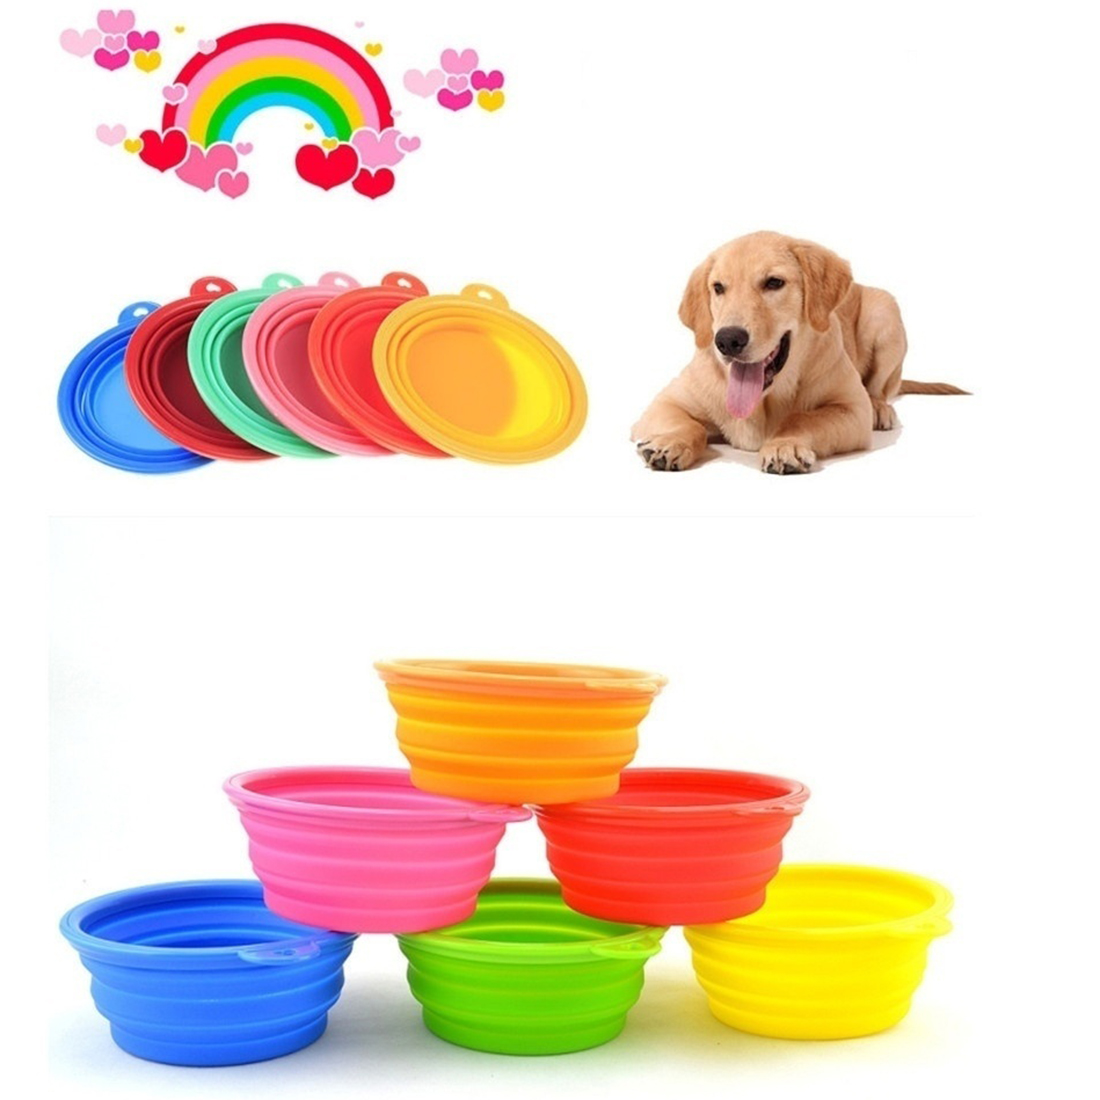 Uncategorized Cute Dog Bowl aliexpress com buy foldable portable dog bowl cute silicone collapsible folding pet travel cat feeding water